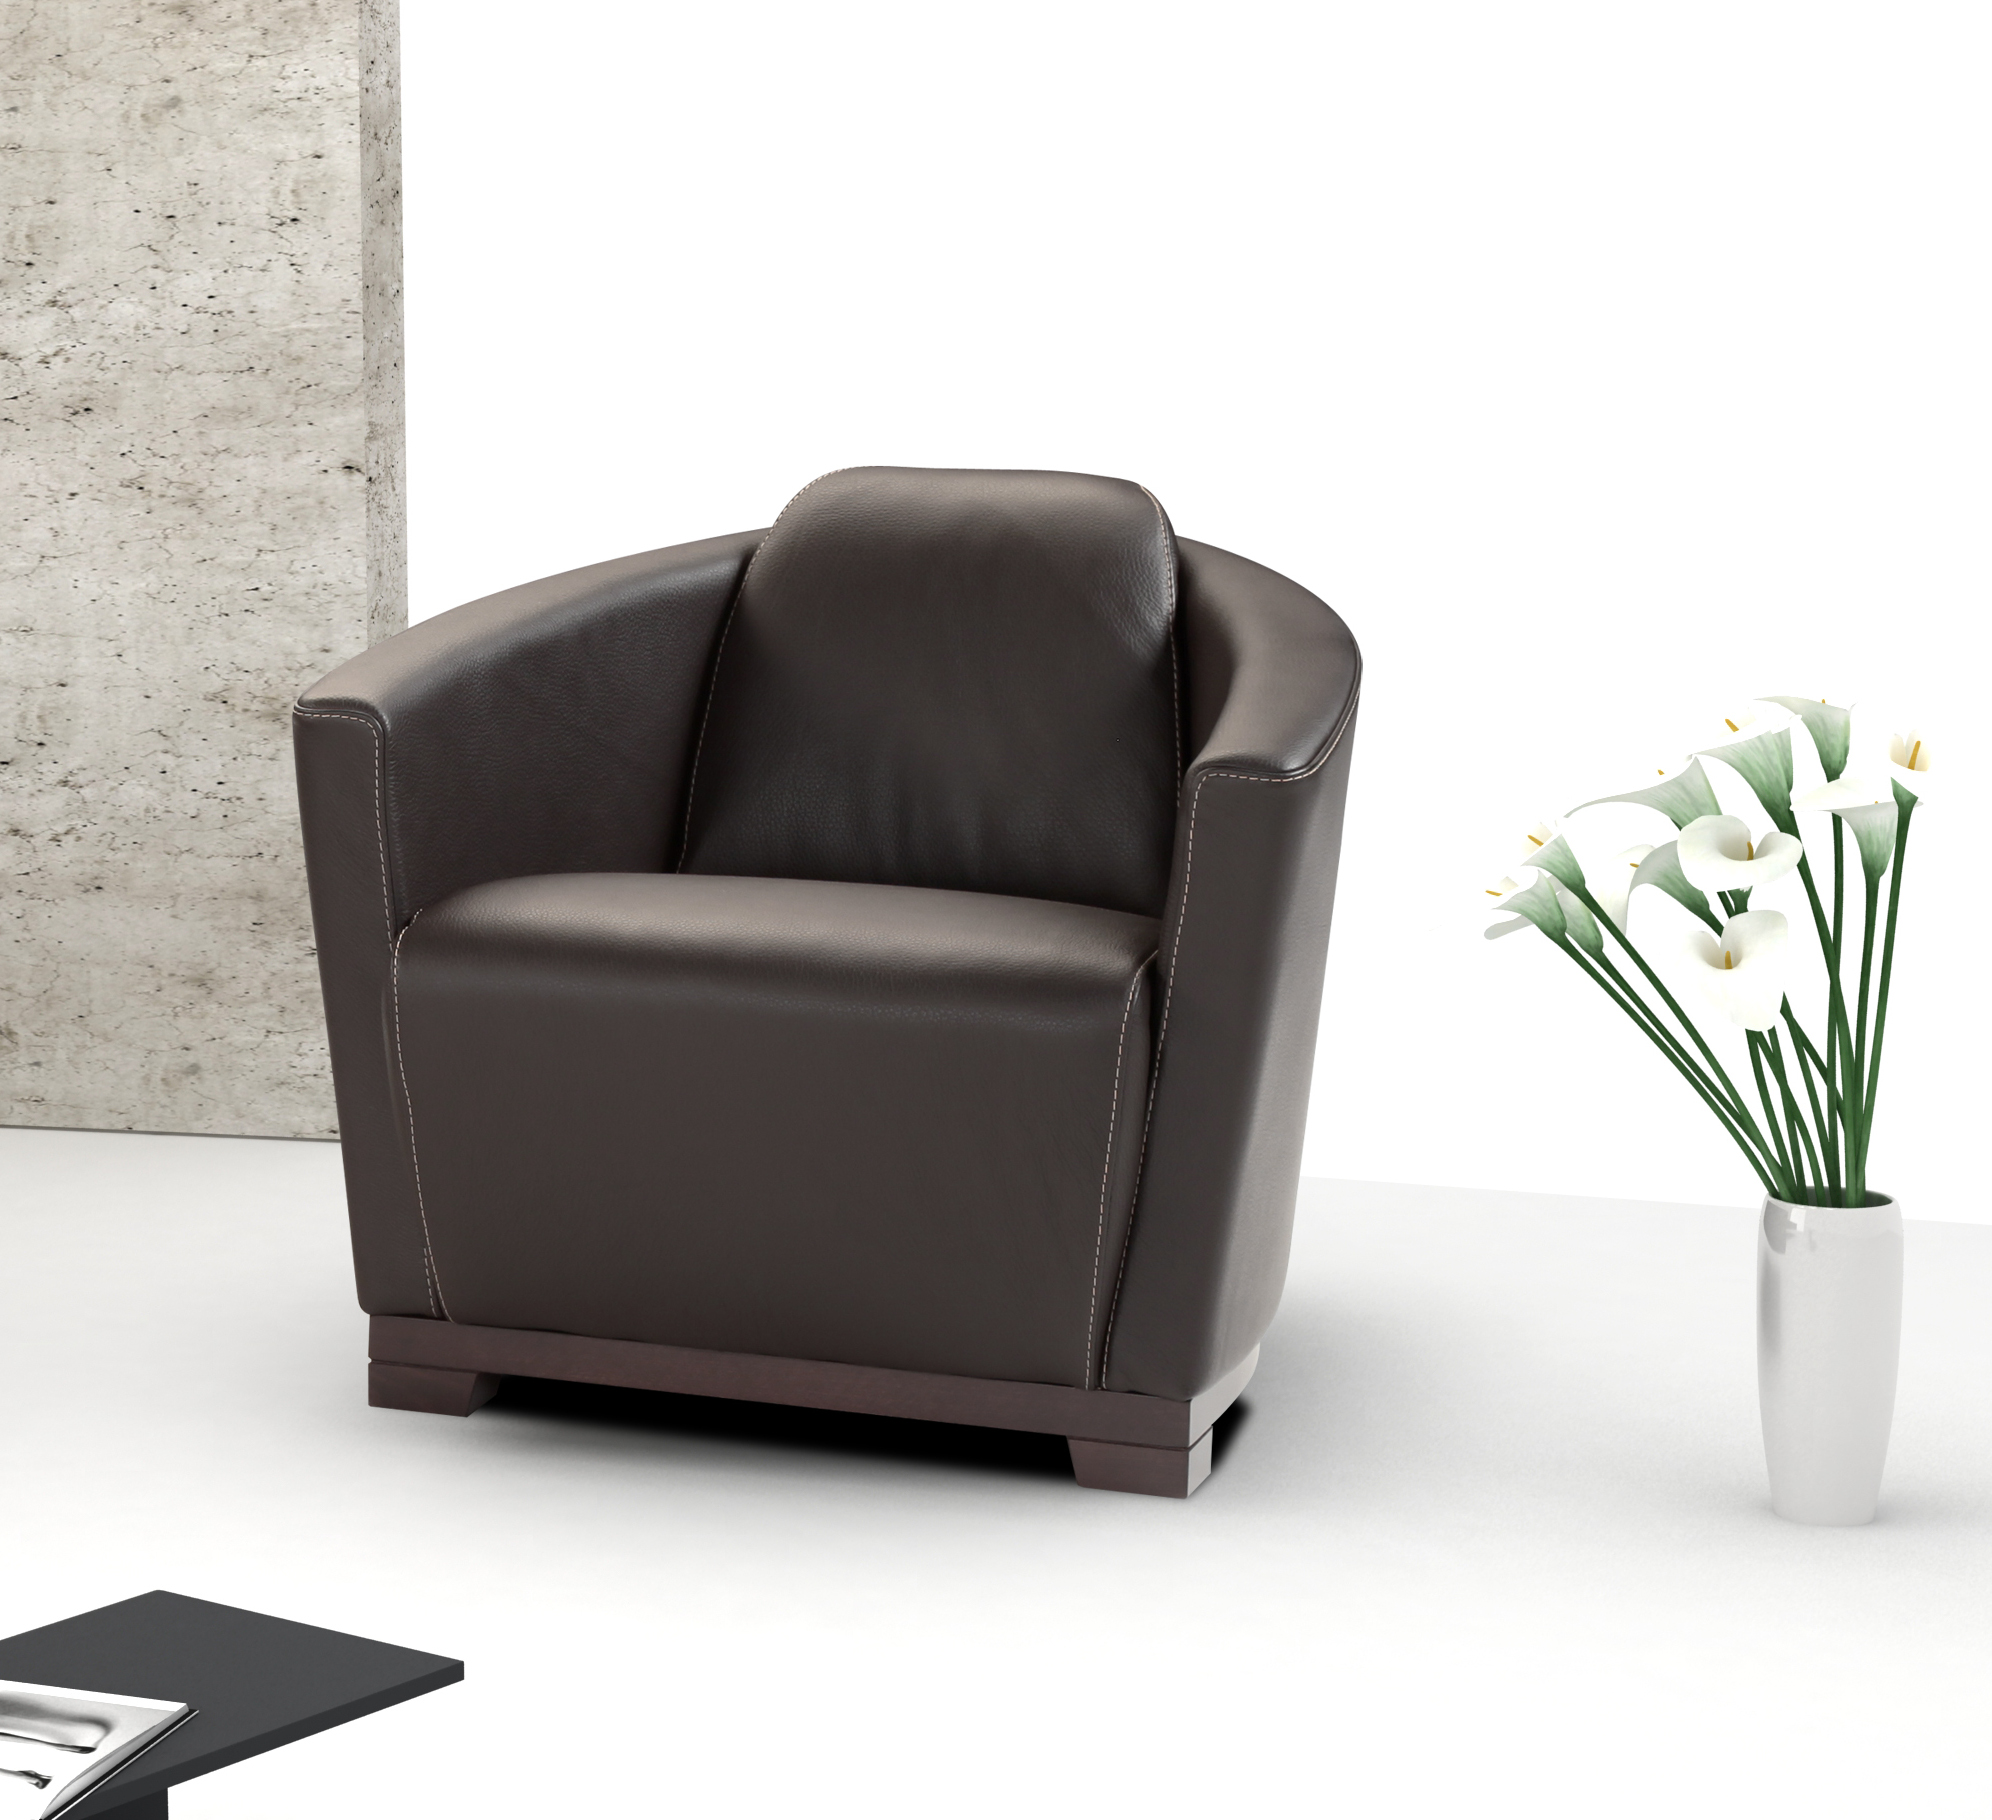 furniture italian leather hotel chair in black 17692 s bw